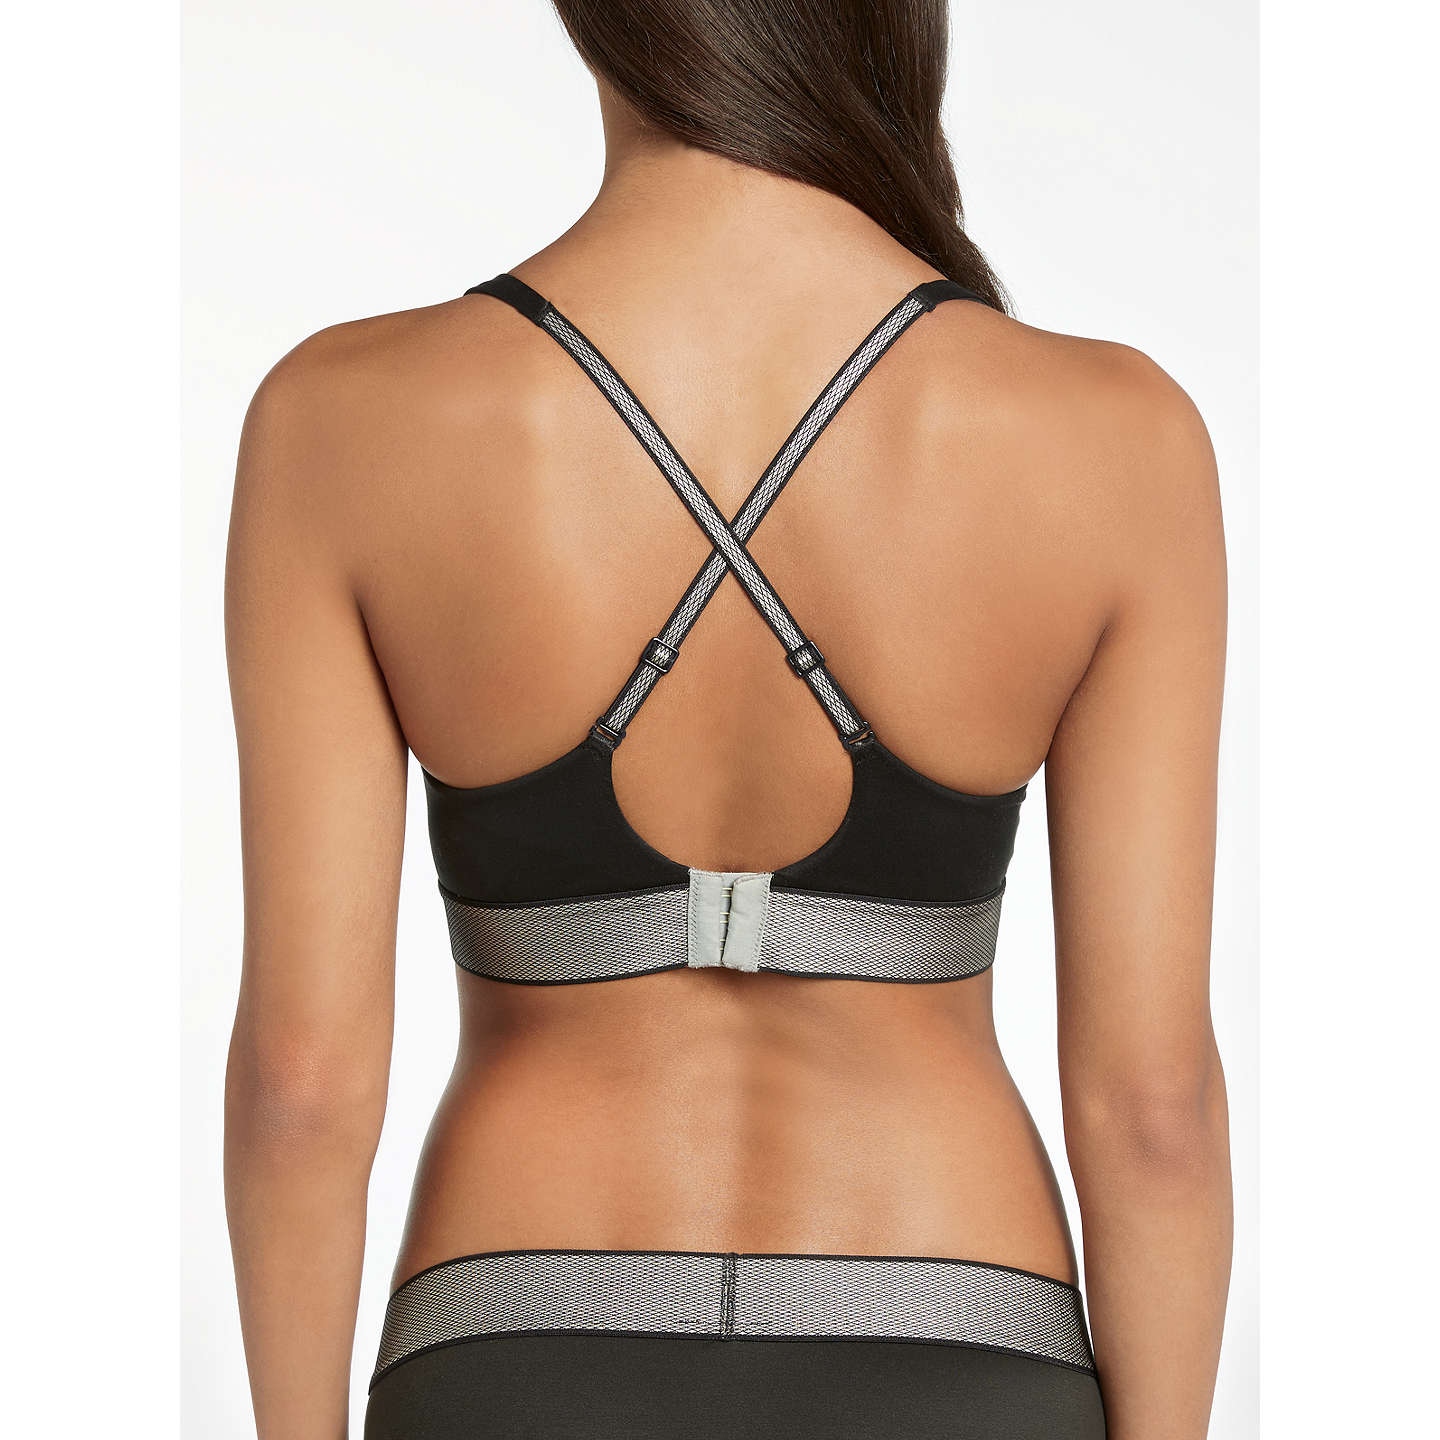 BuyCalvin Klein Underwear Customized Stretch Plunge Bra, Black, 32A Online at johnlewis.com